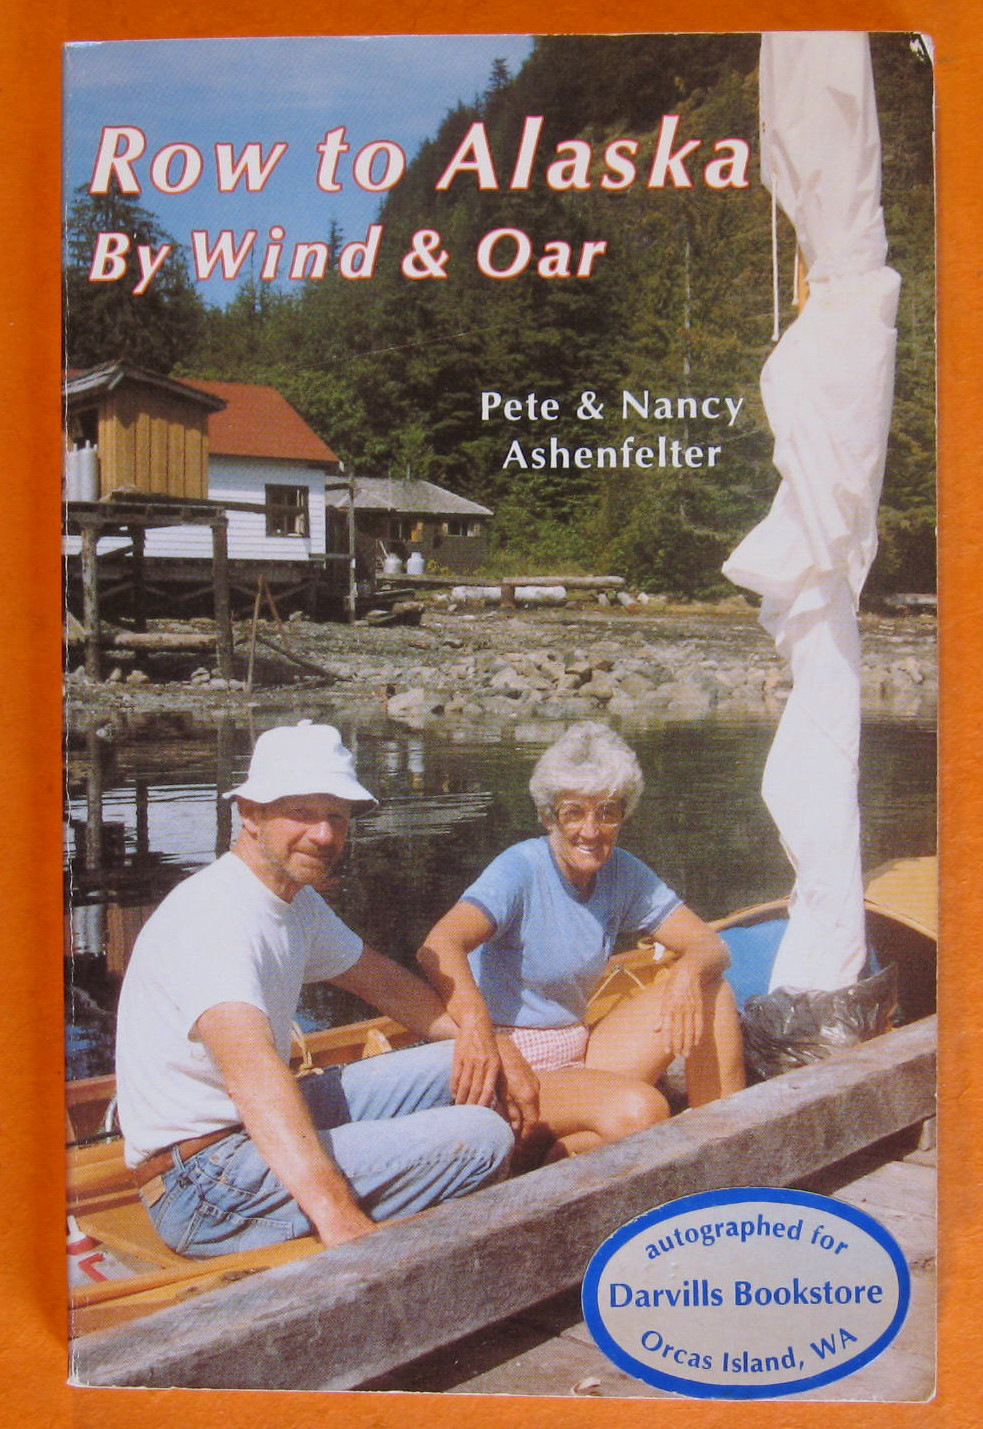 Row to Alaska By Wind & Oar, Ashenfelter, Pete & Nancy